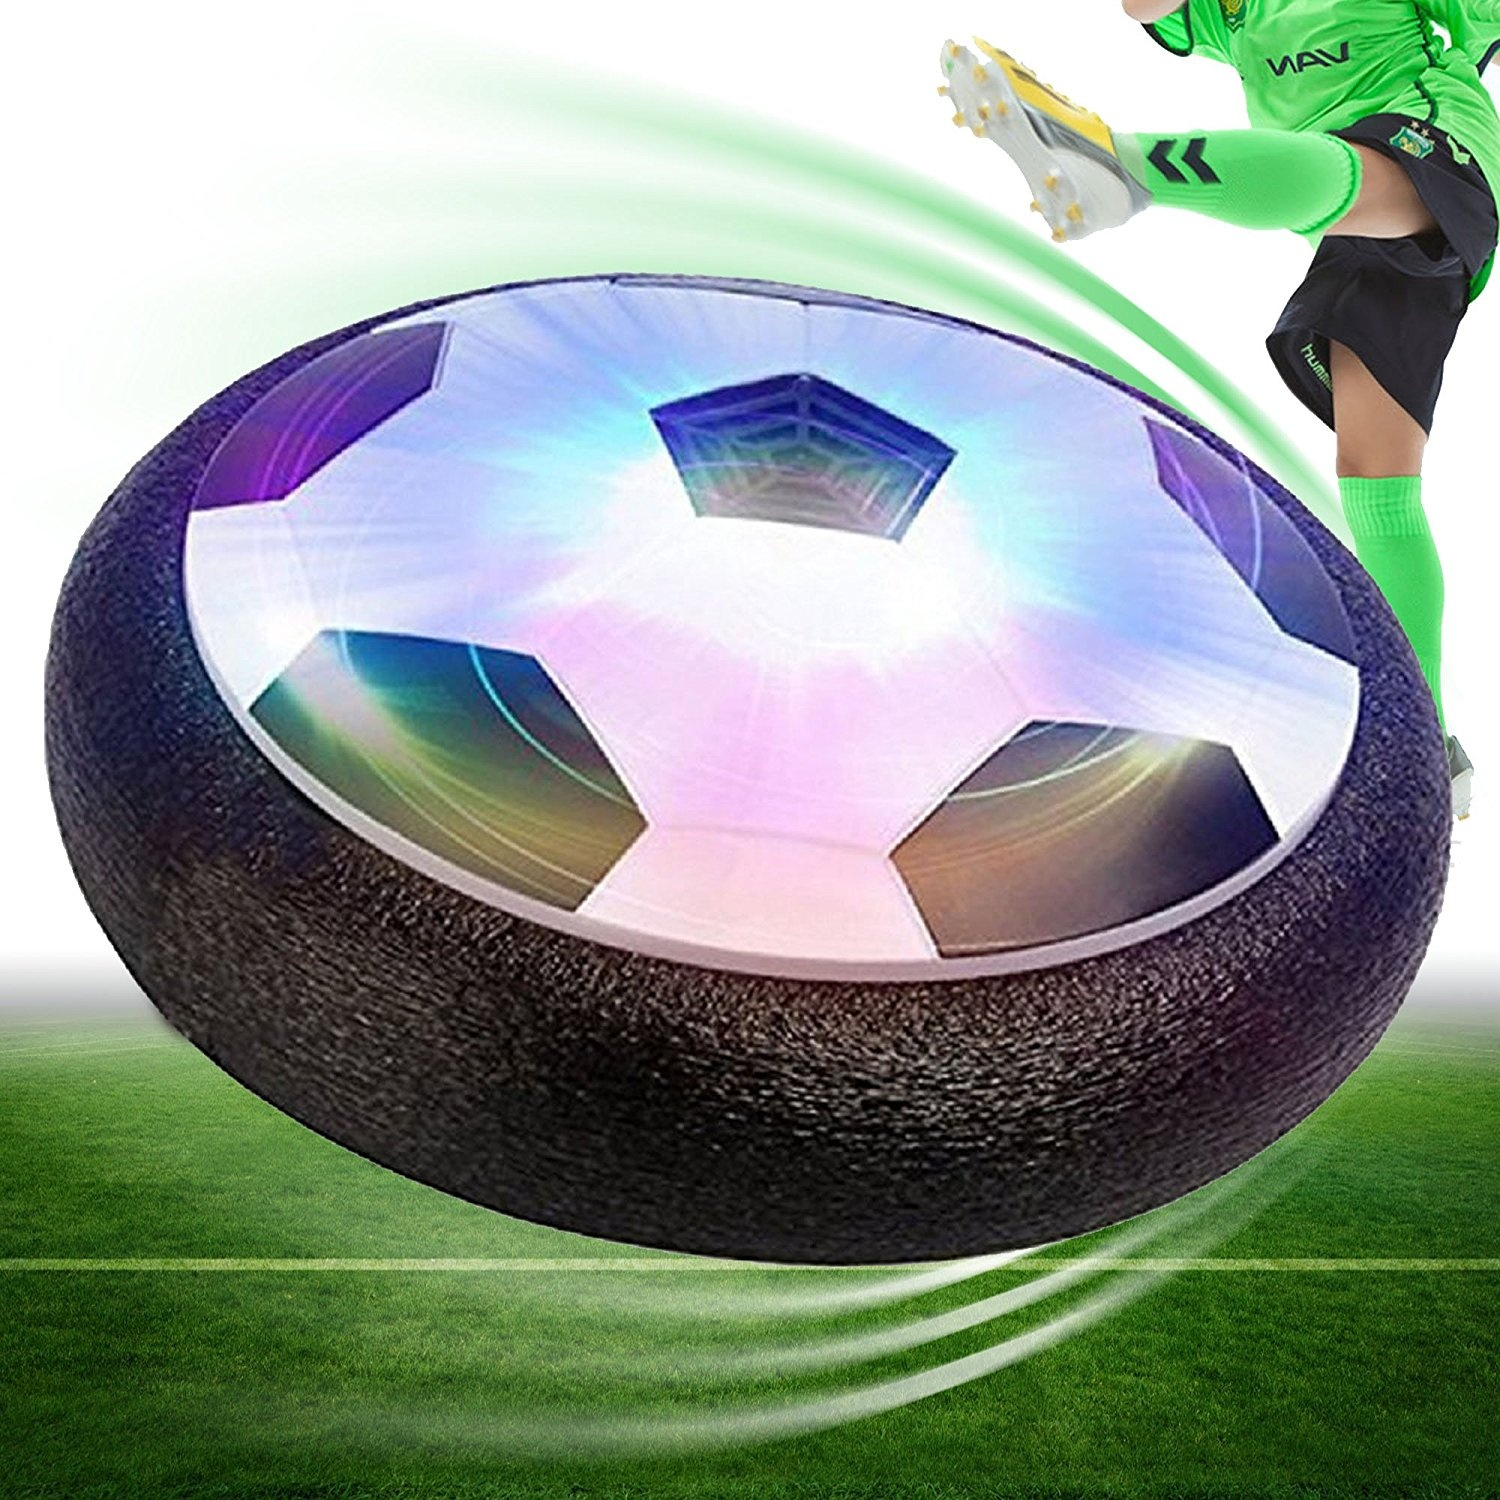 0fd57b0ec292 Hover Ball Air Power Soccer Disc Hover Soccer Football with Powerful ...